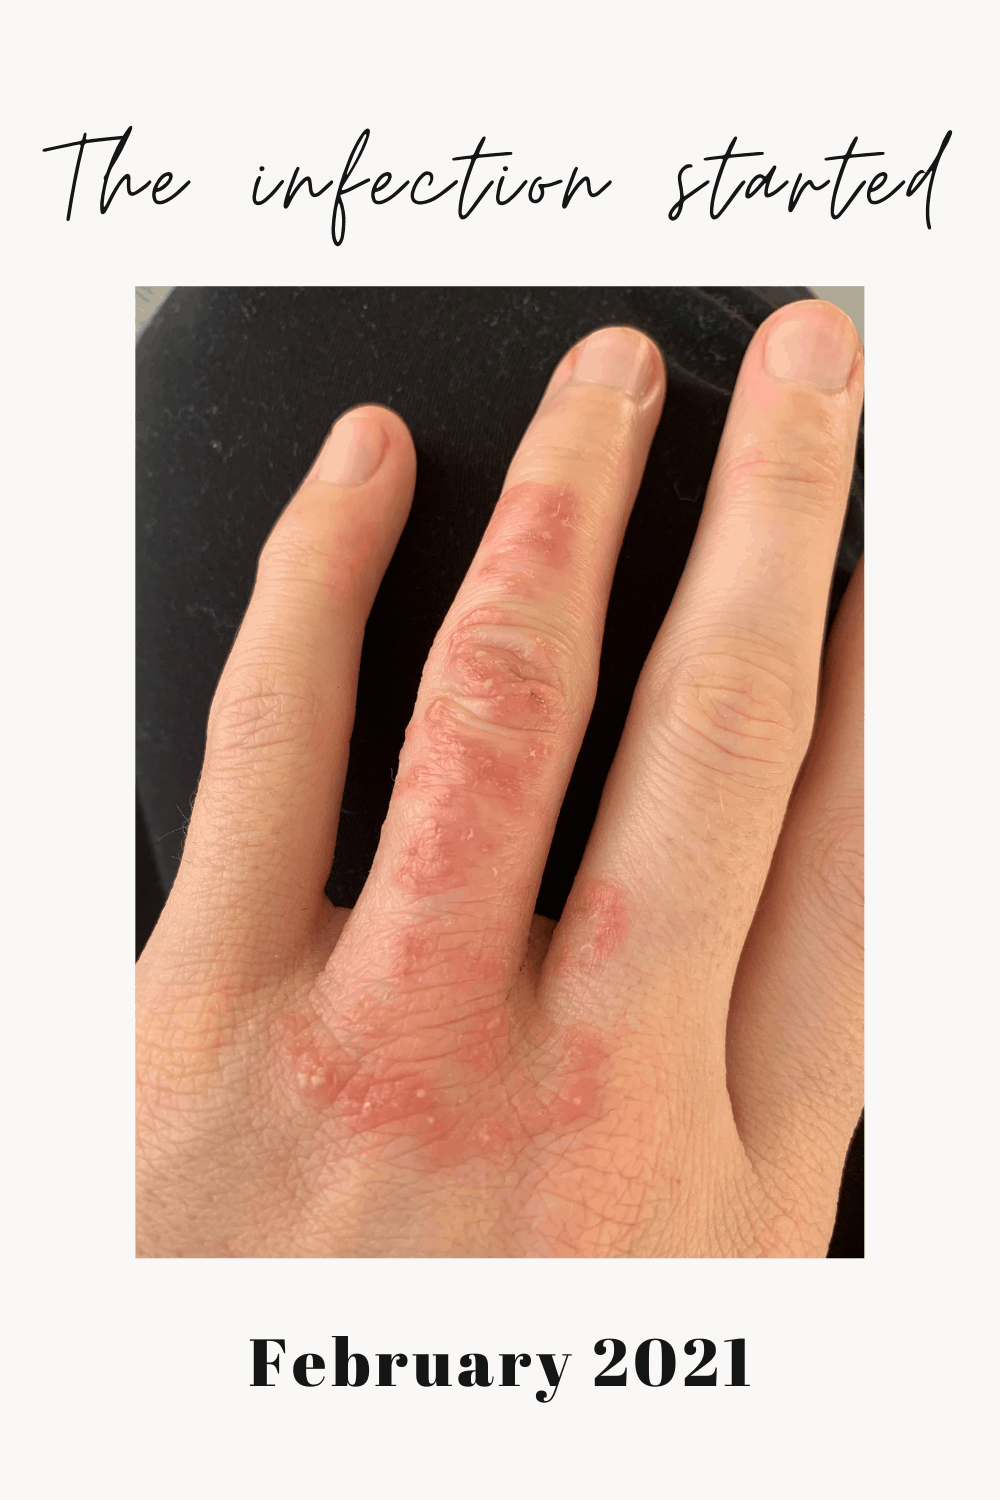 My left finger & palm with an eczema flare & bacterial infection.